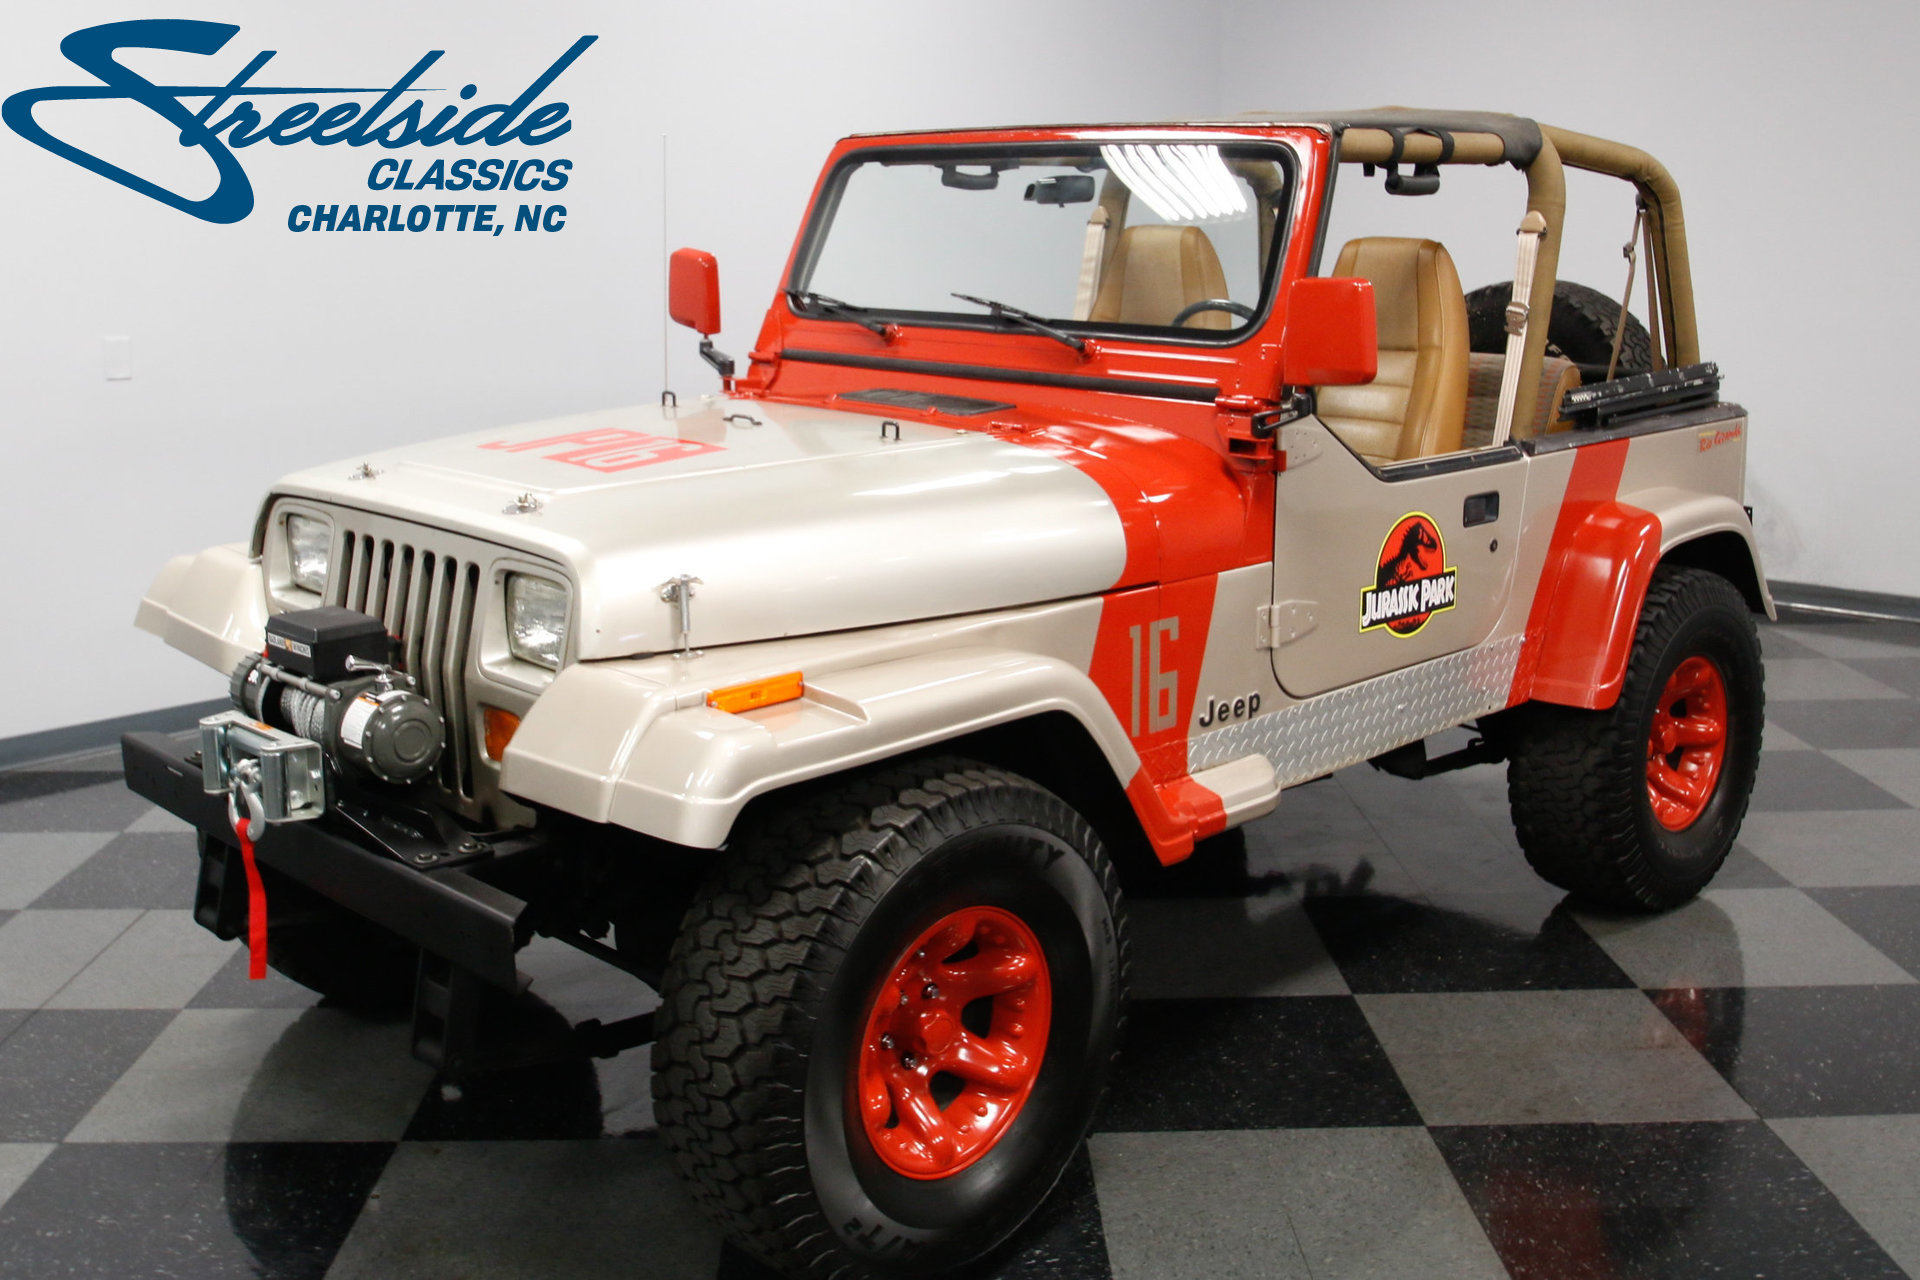 1995 jeep wrangler streetside classics the nation 39 s trusted classic car consignment dealer. Black Bedroom Furniture Sets. Home Design Ideas